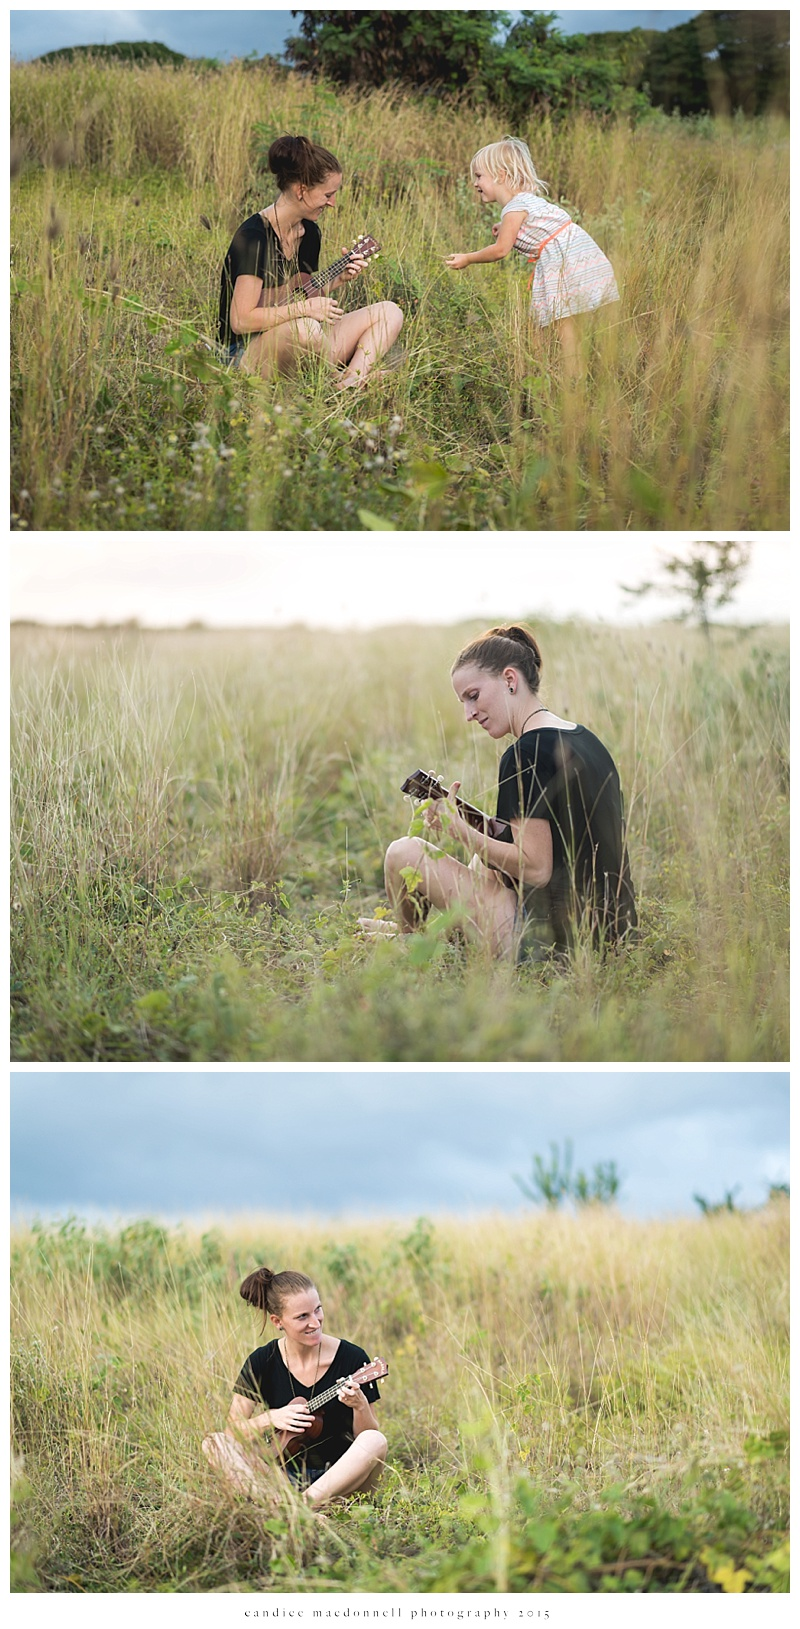 playing ukulele in the field © candice macdonnell photography